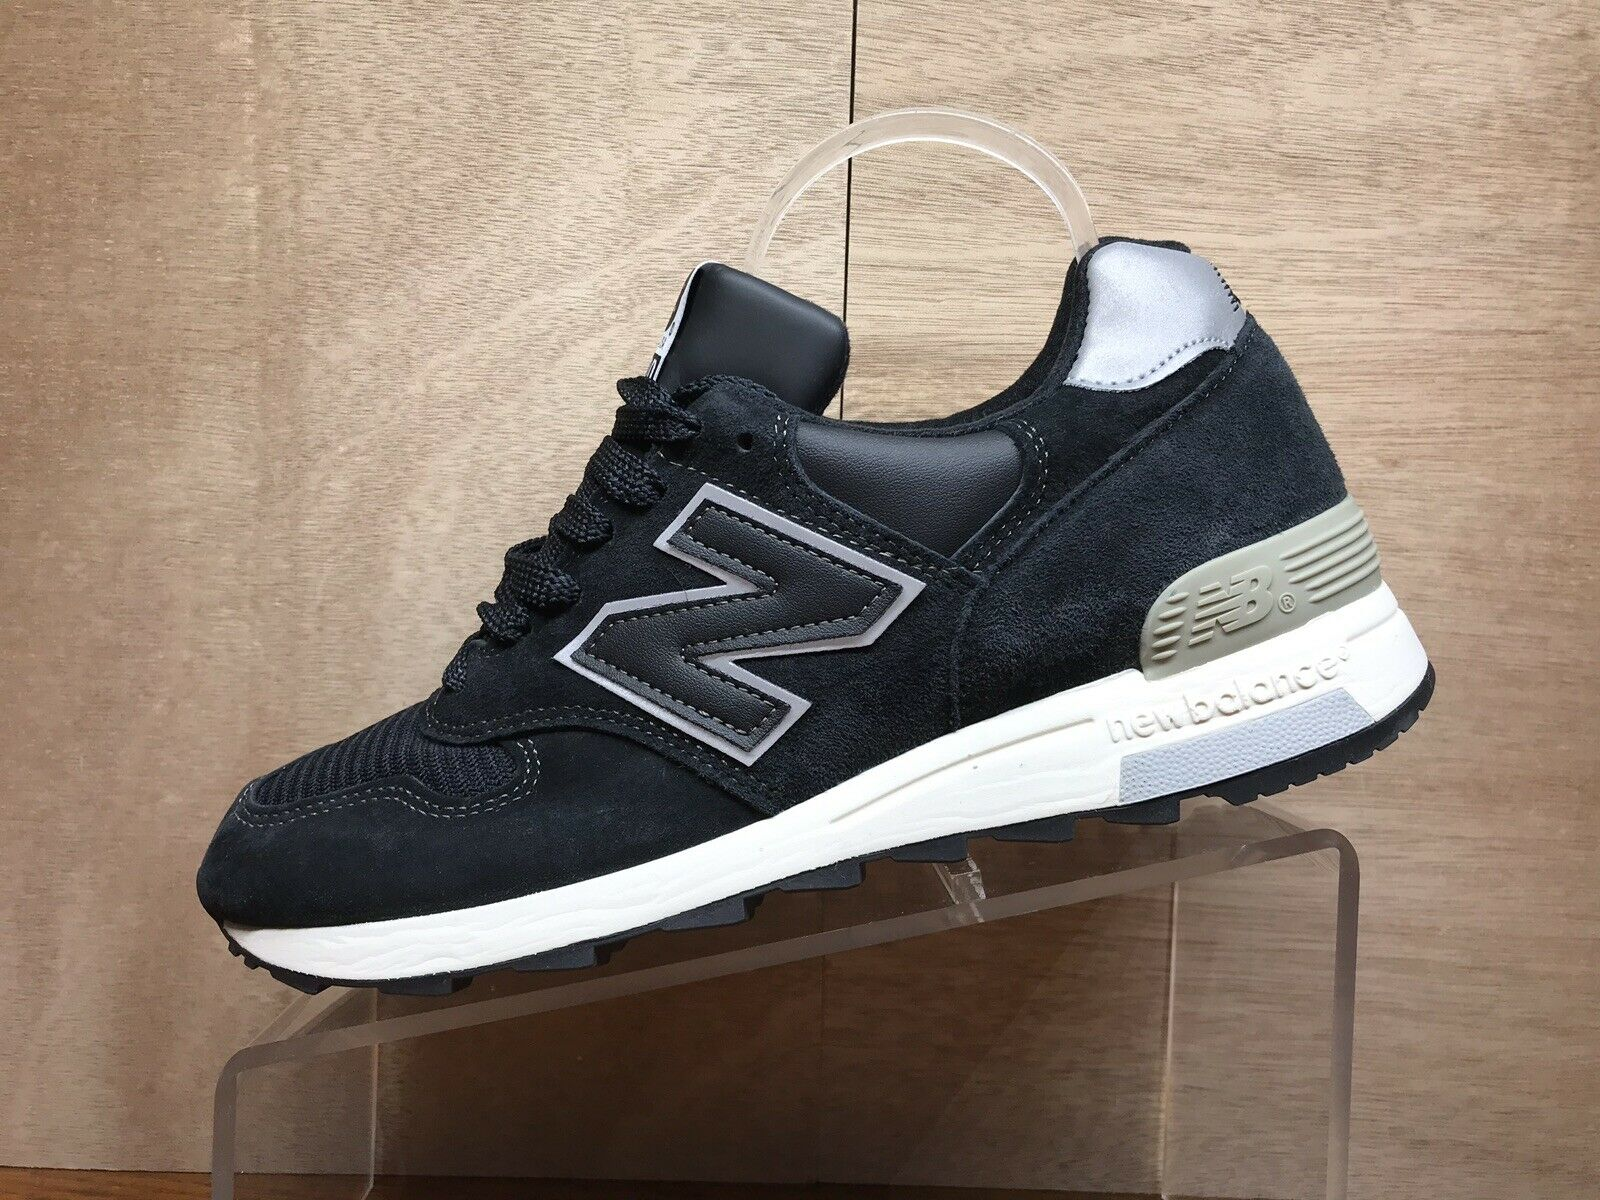 New Balance M1400BKS Black Silver White Made in USA Japan Exclusive Mens 7